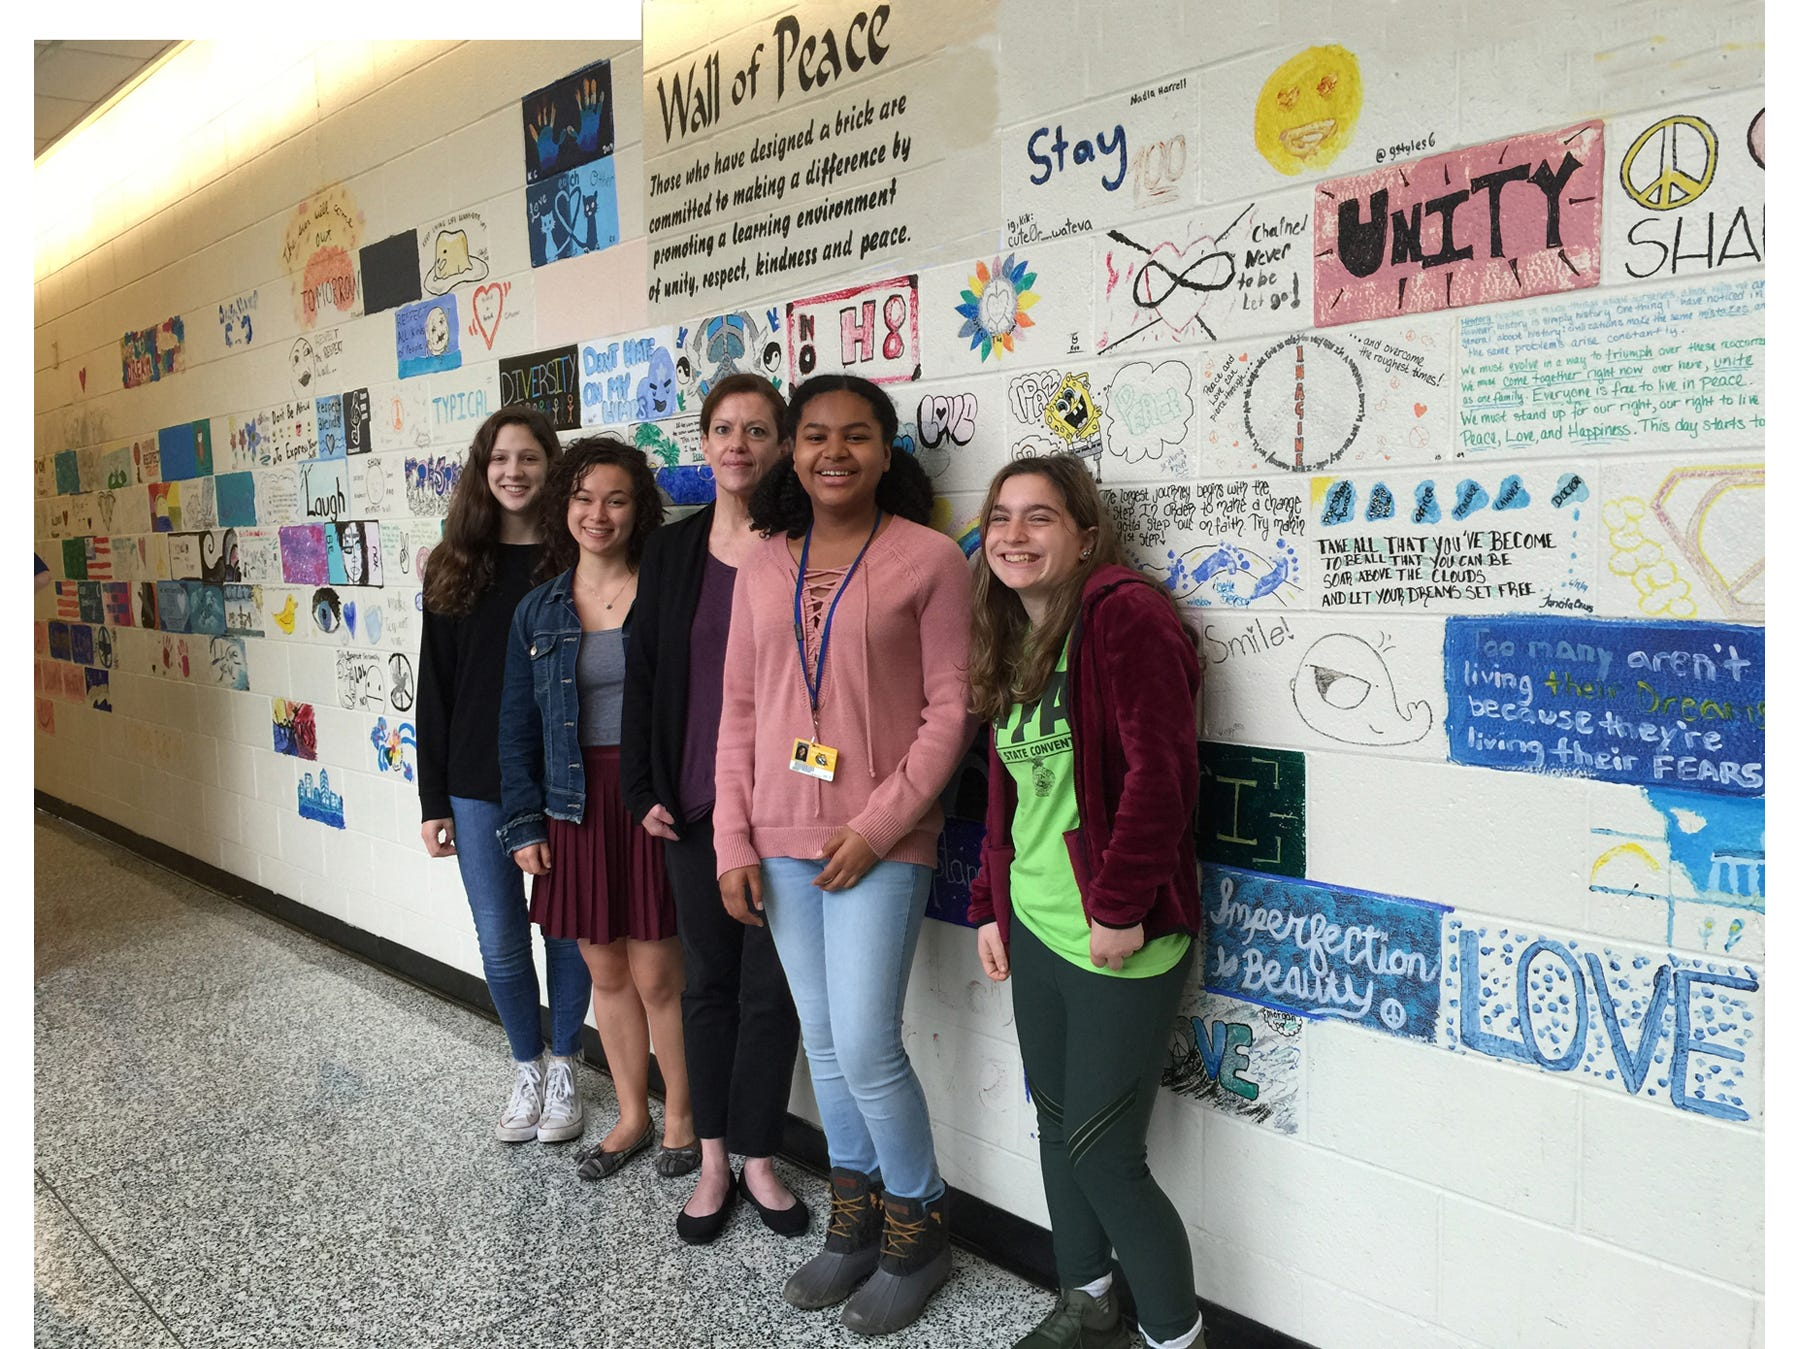 (l-r) SCVTHS students and Friends of Rachel club members Grace Coulbourne of Branchburg, Phoebe Chen of Hillsborough, SCVTHS SAC/Mental Health Counselor Donna Lenox, SCVTHS students Shianti Frazier of North Plainfield and Maria Scarpantonio of Manville pose for a photo during the Linkages Department event.